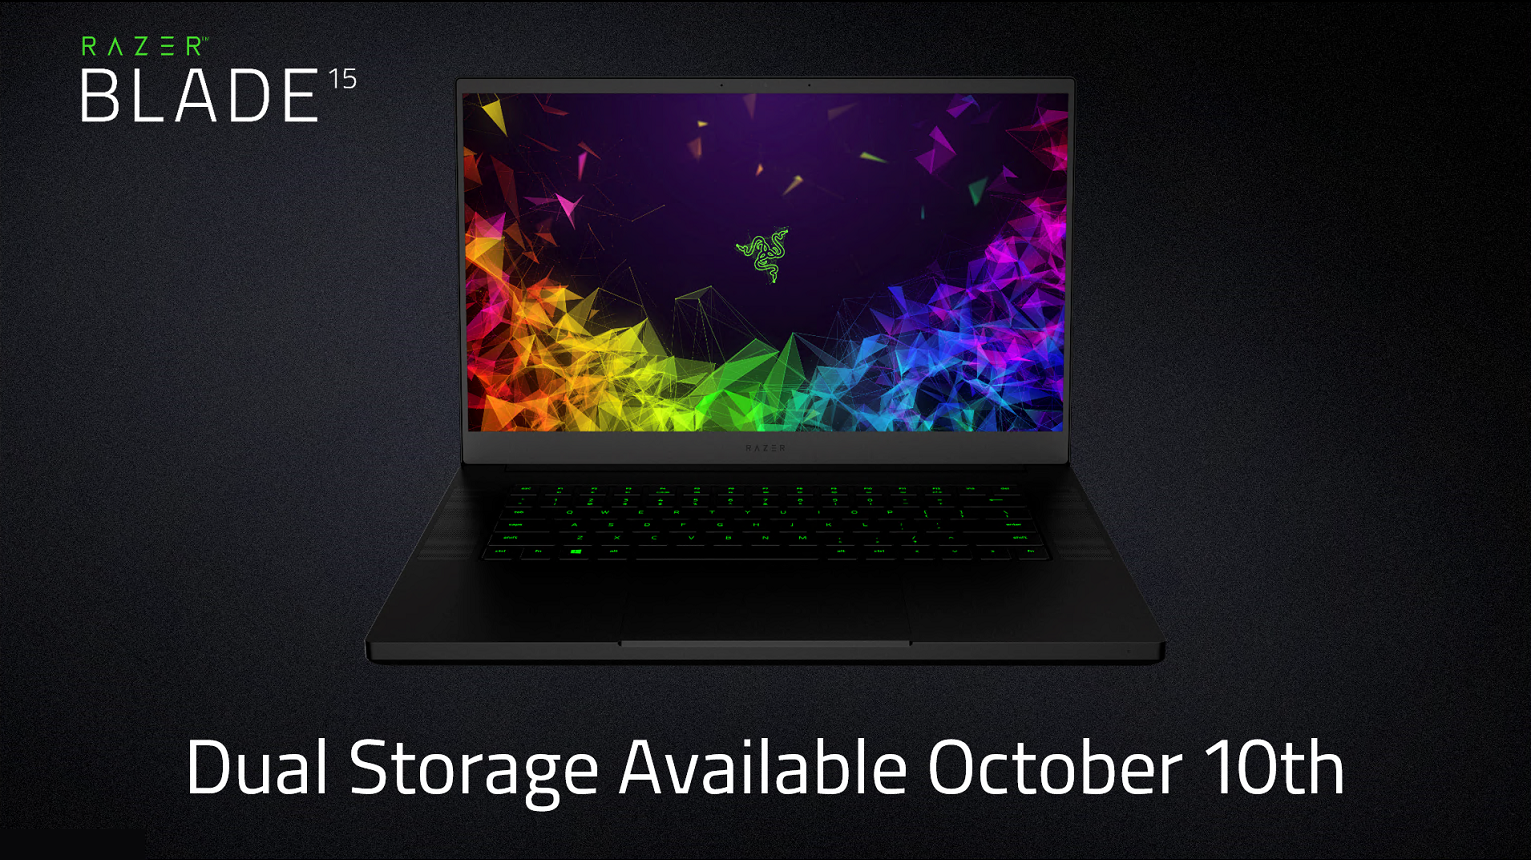 New, cheaper Razer Blade gaming laptop packs dual storage and Ethernet